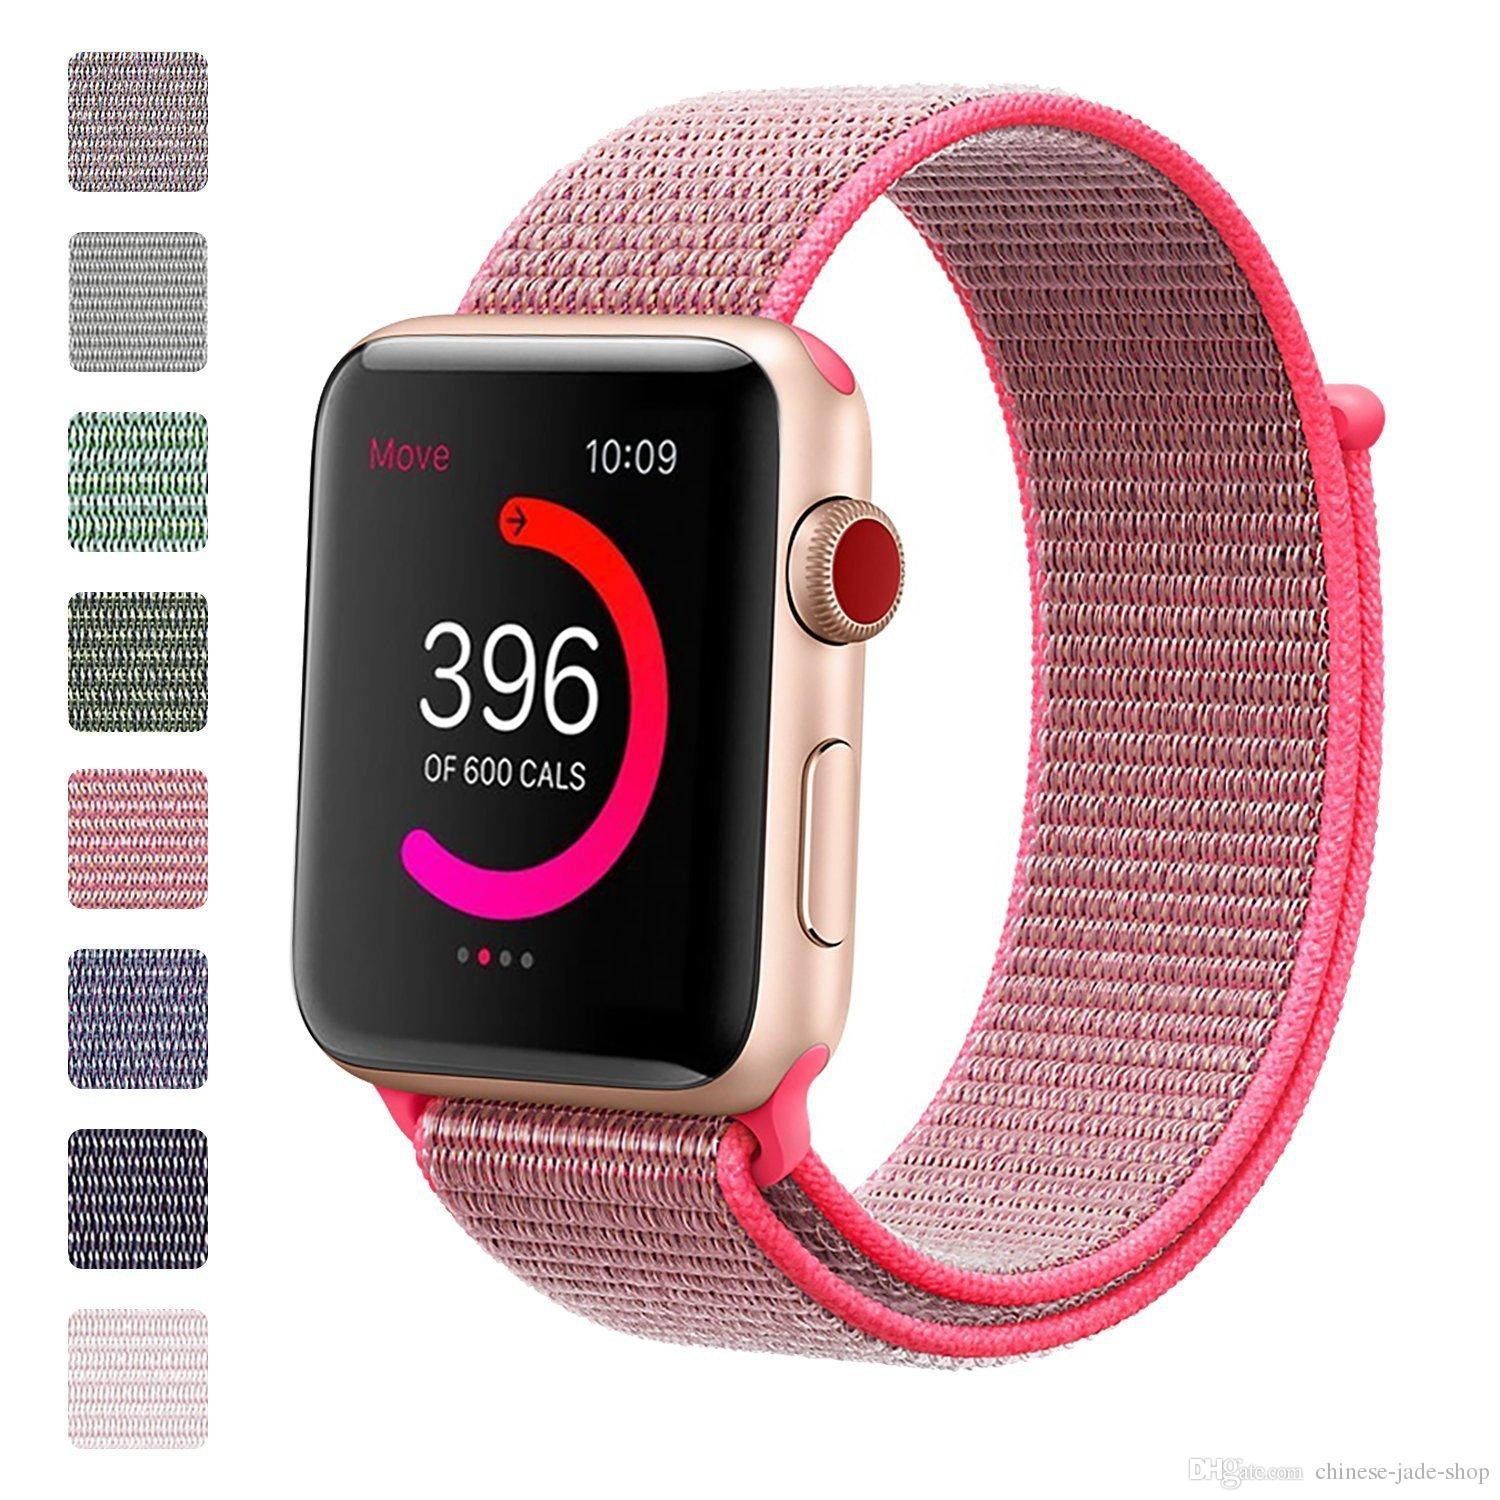 Acquista Apple Watch Series 4 1 2 3 Iwatch 4 38mm 42mm 40mm 44mm Nylon  Sport Loop Bracciale Cinturino Cinturino Di Ricambio 20 Pz   Lotto A  3.72  Dal ... 147da1476d1